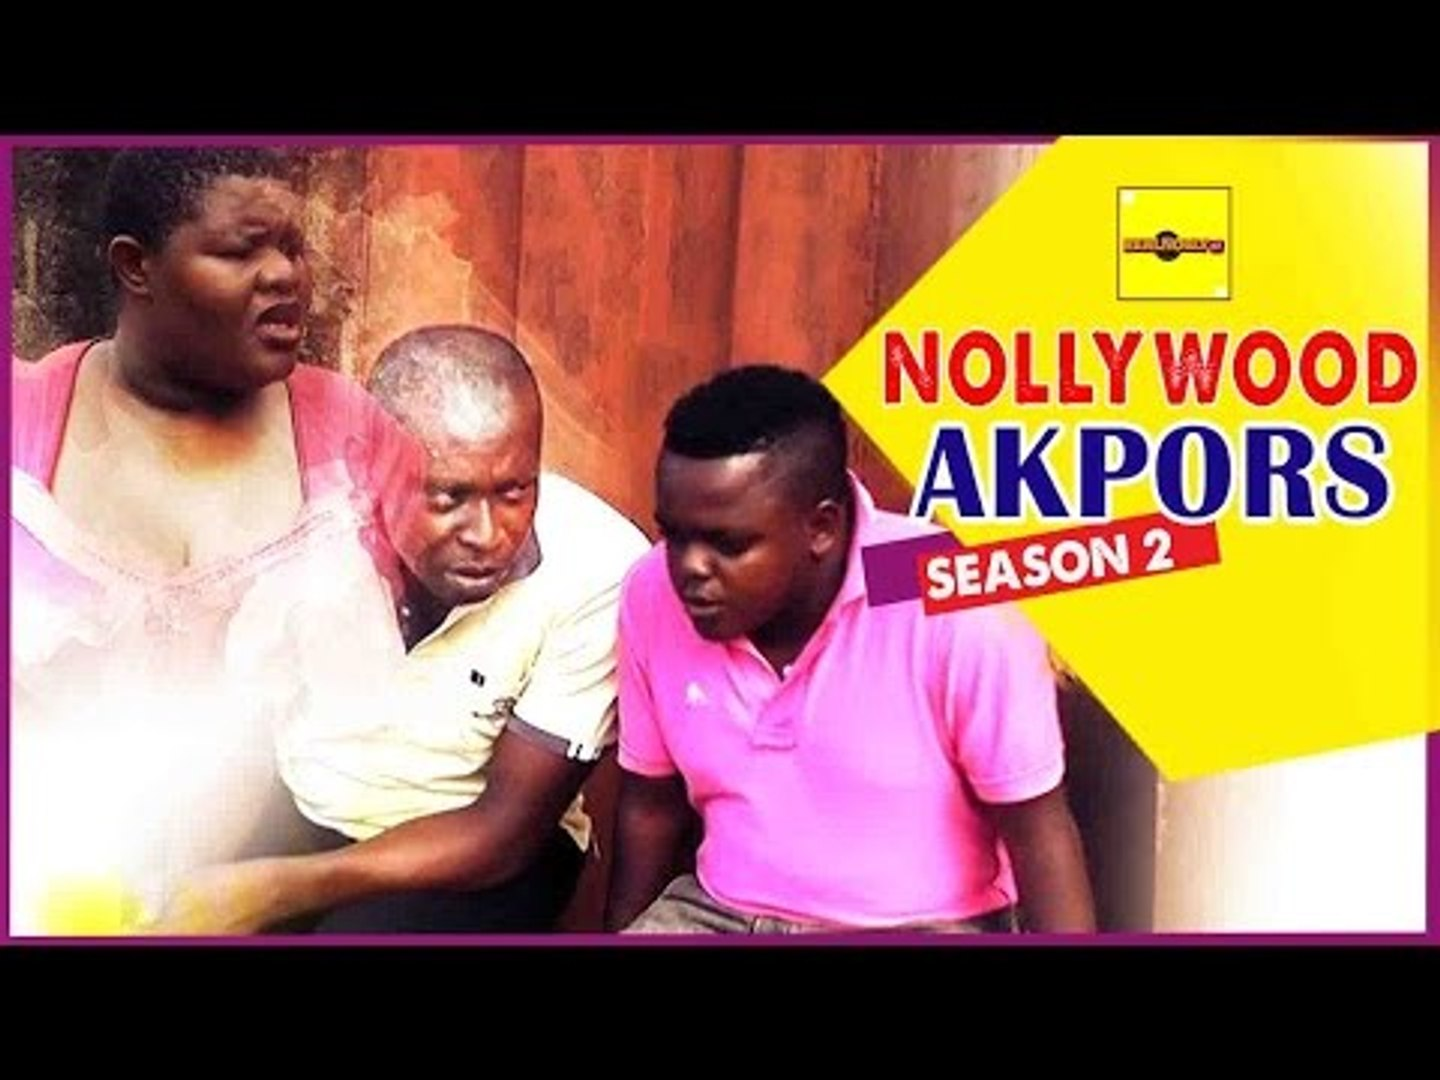 Nigerian Nollywood Movies - Nollywood Akpors 2